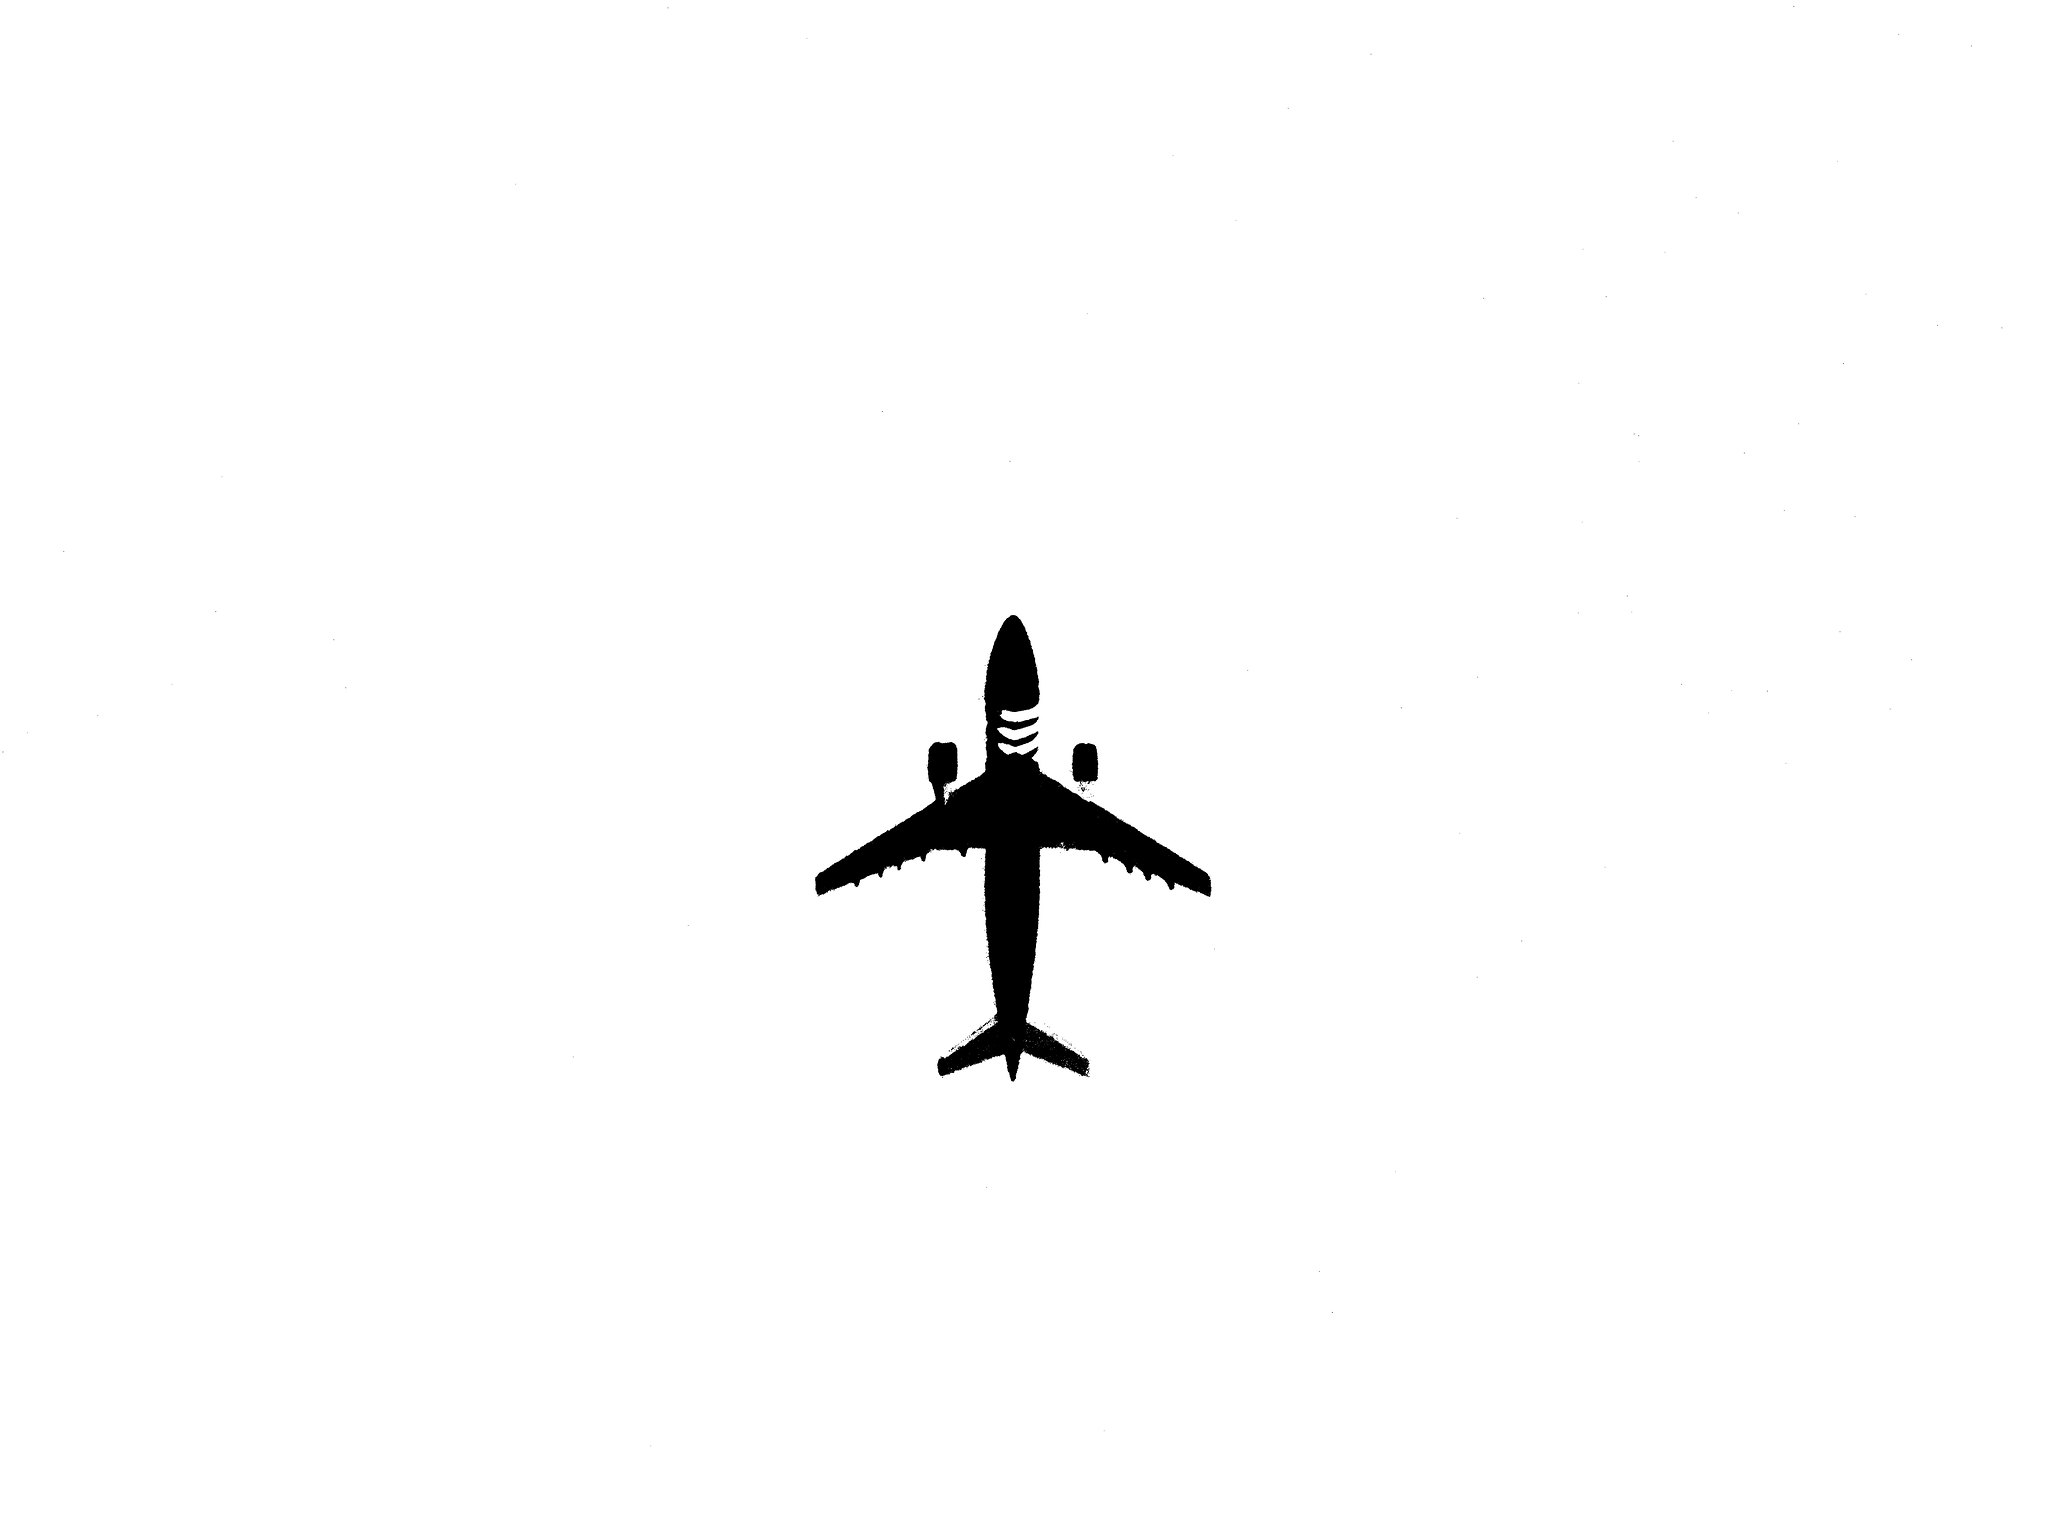 Just a plane